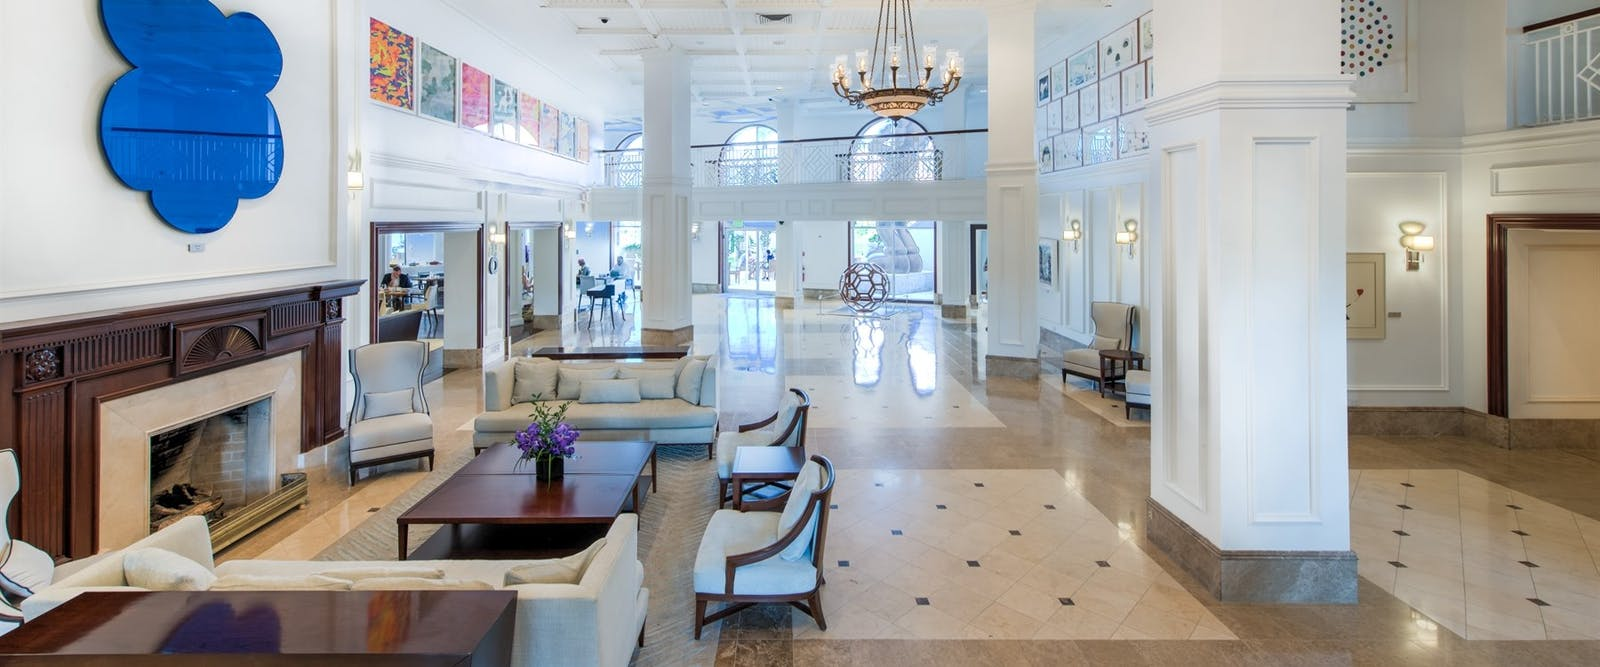 Lobby Area at Hamilton Princess & Beach Club, Bermuda